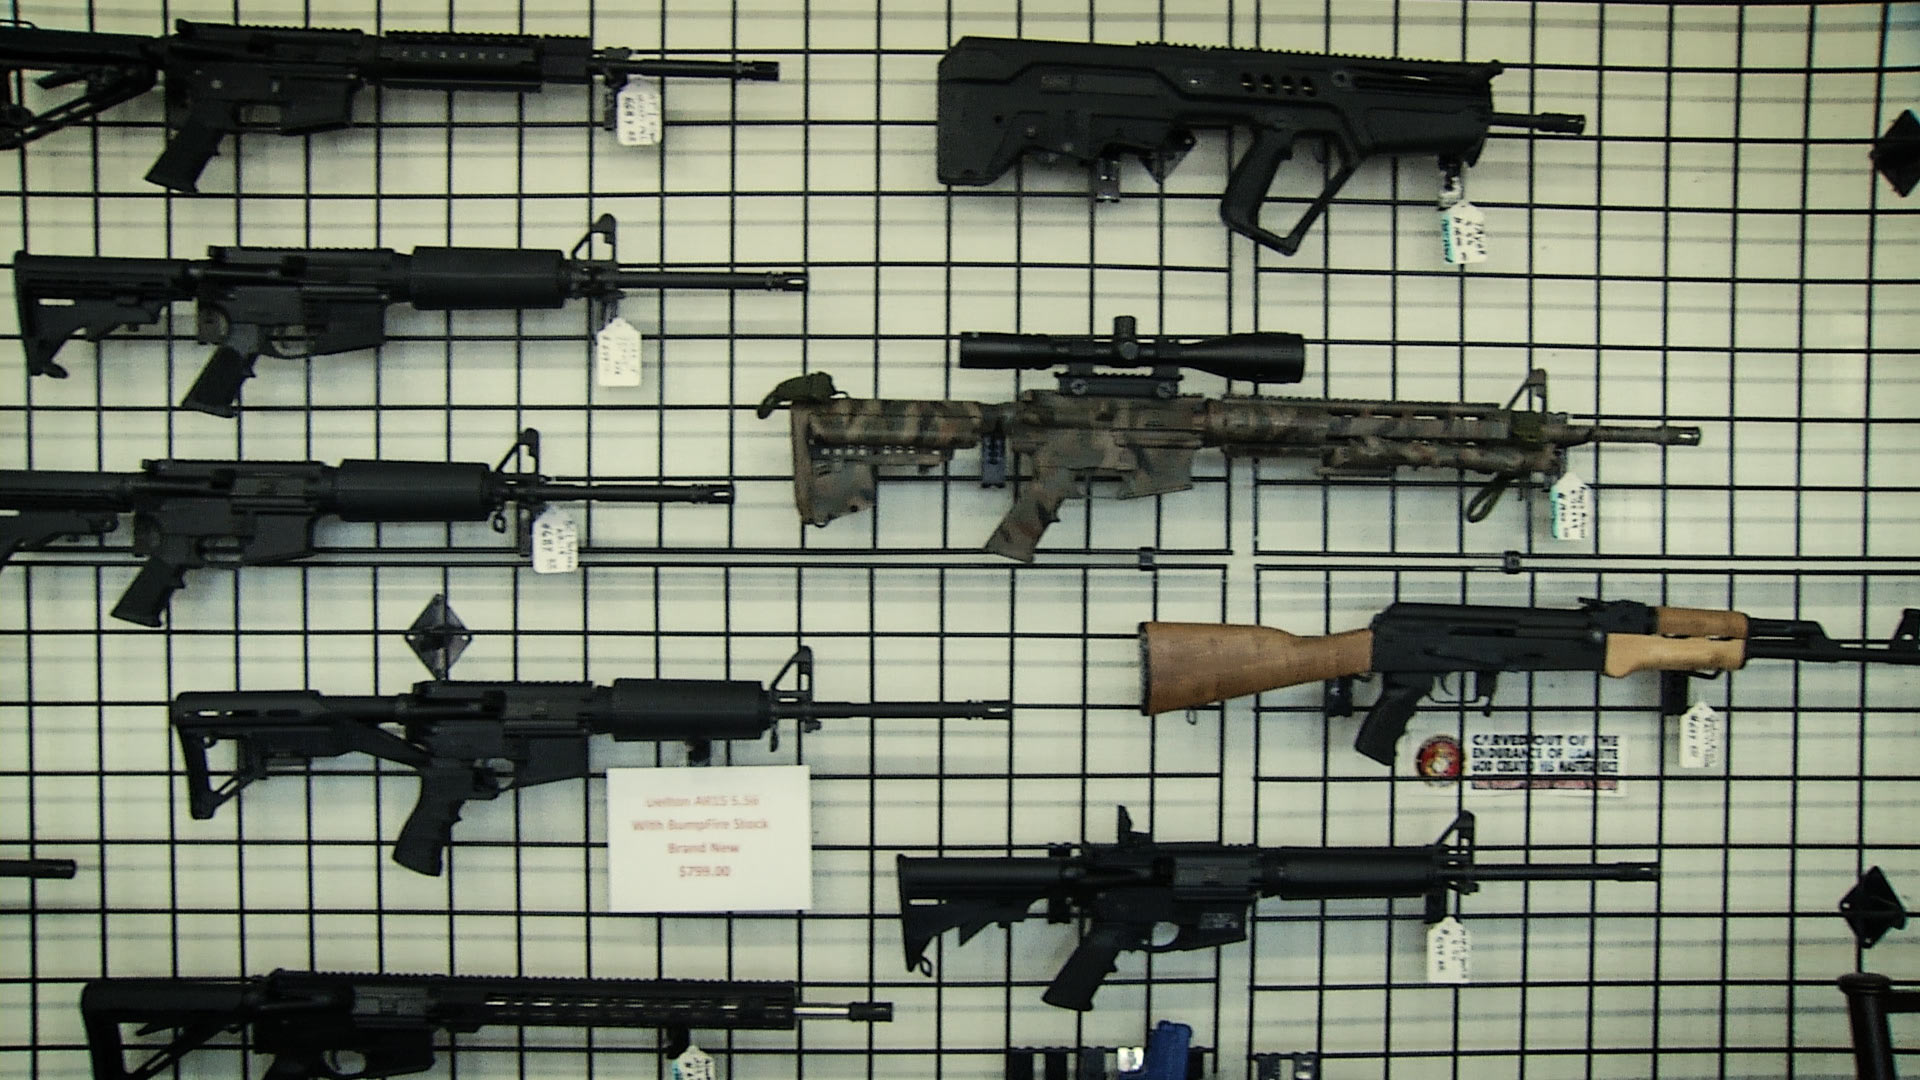 Guns for sale hang on the wall of a Tucson store.